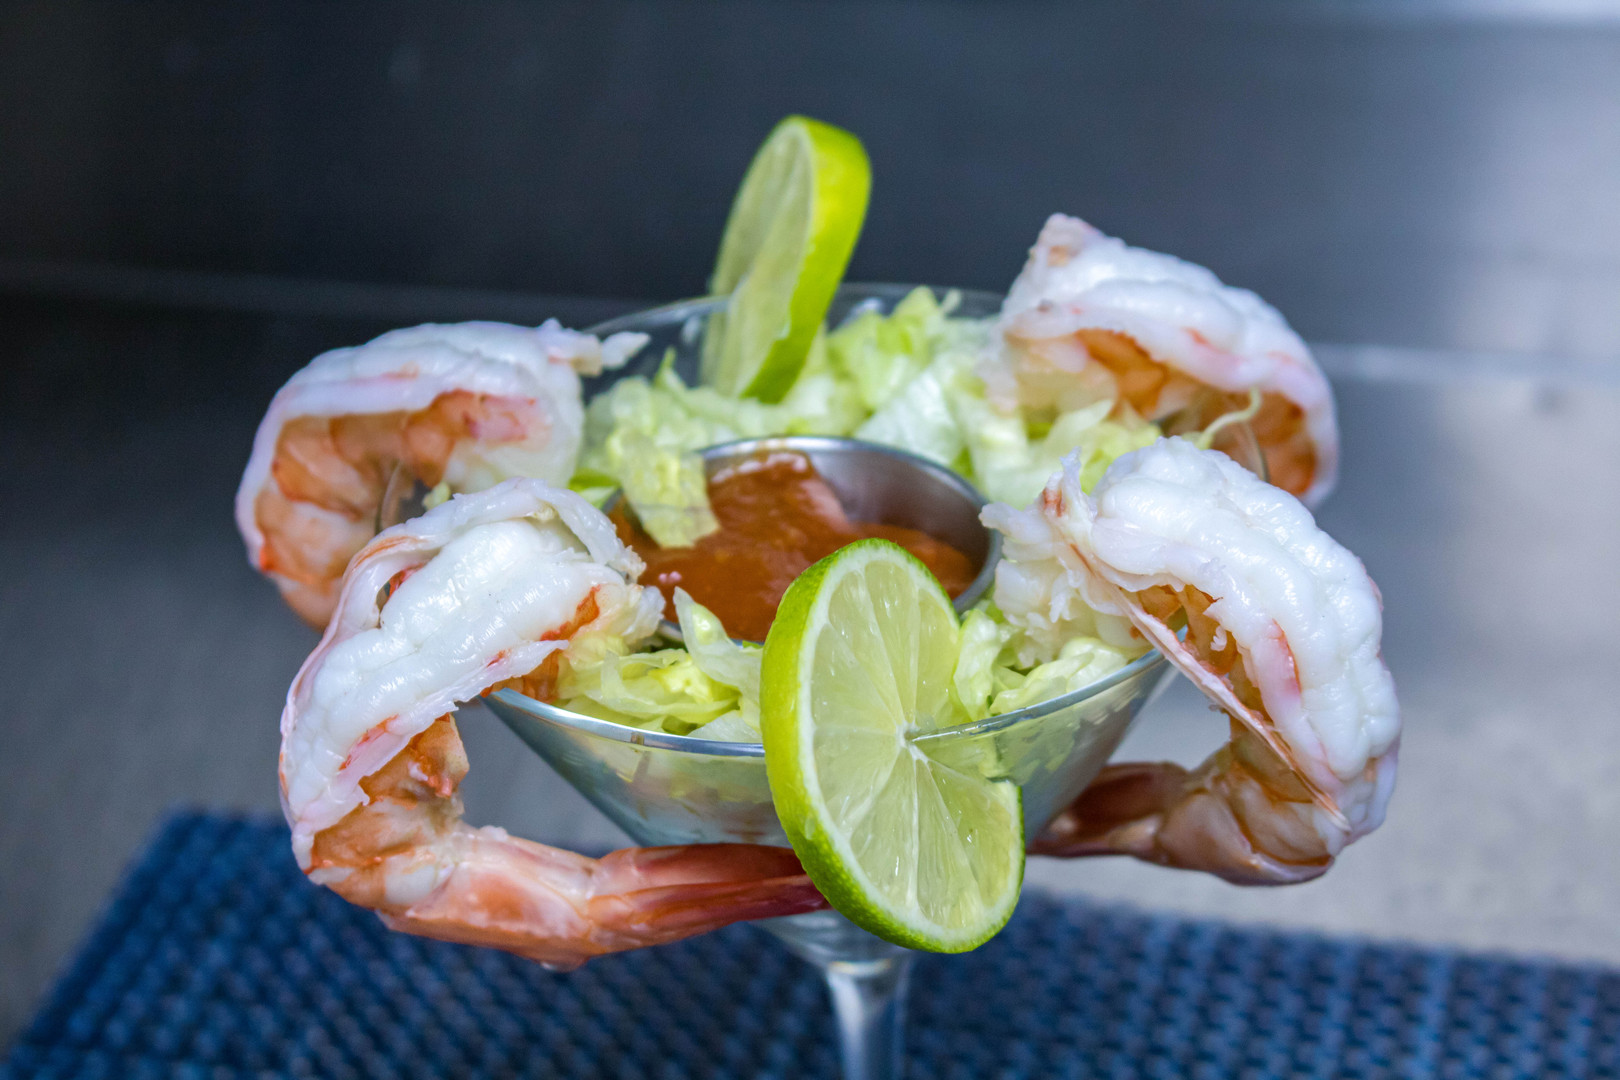 Shrimp cocktail shot by Miami Food Photographer Jorge Alberto Perez